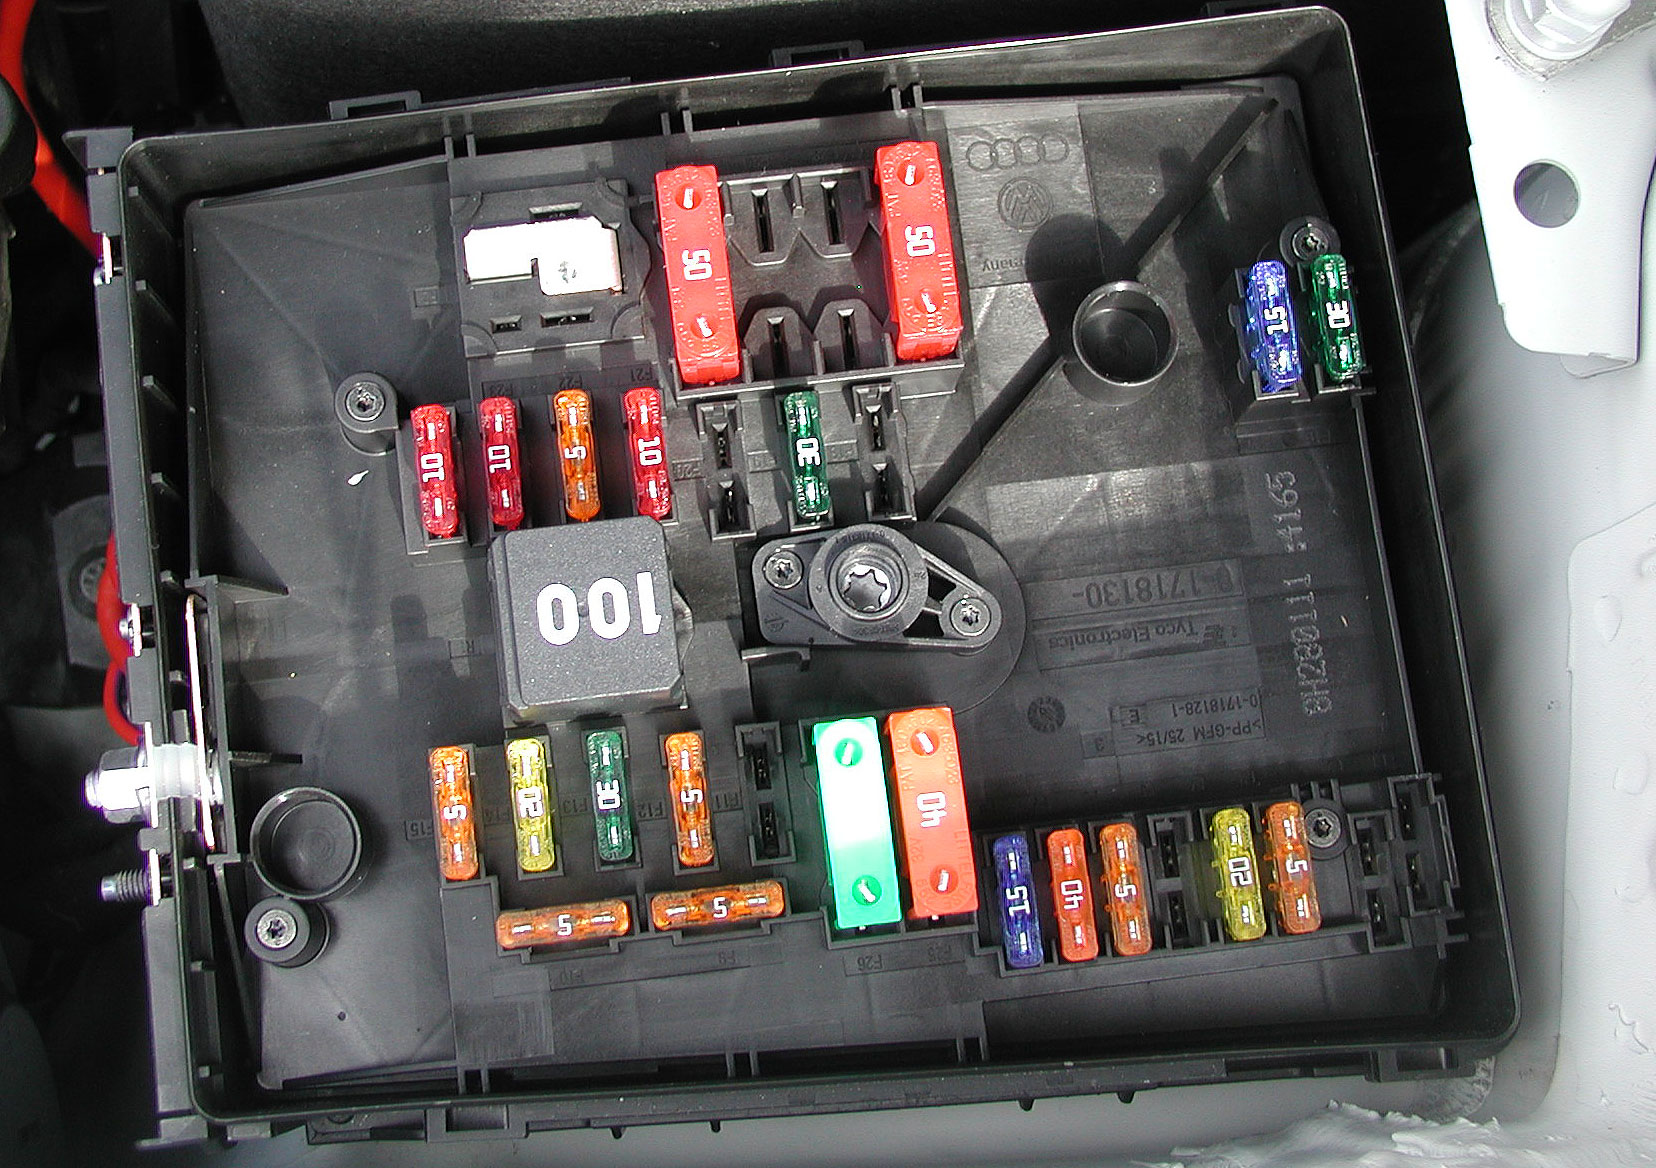 engineFuses2 golf mkv 1 9 tdi rcd 310 battery drain the volkswagen club of golf 6 fuse box at aneh.co